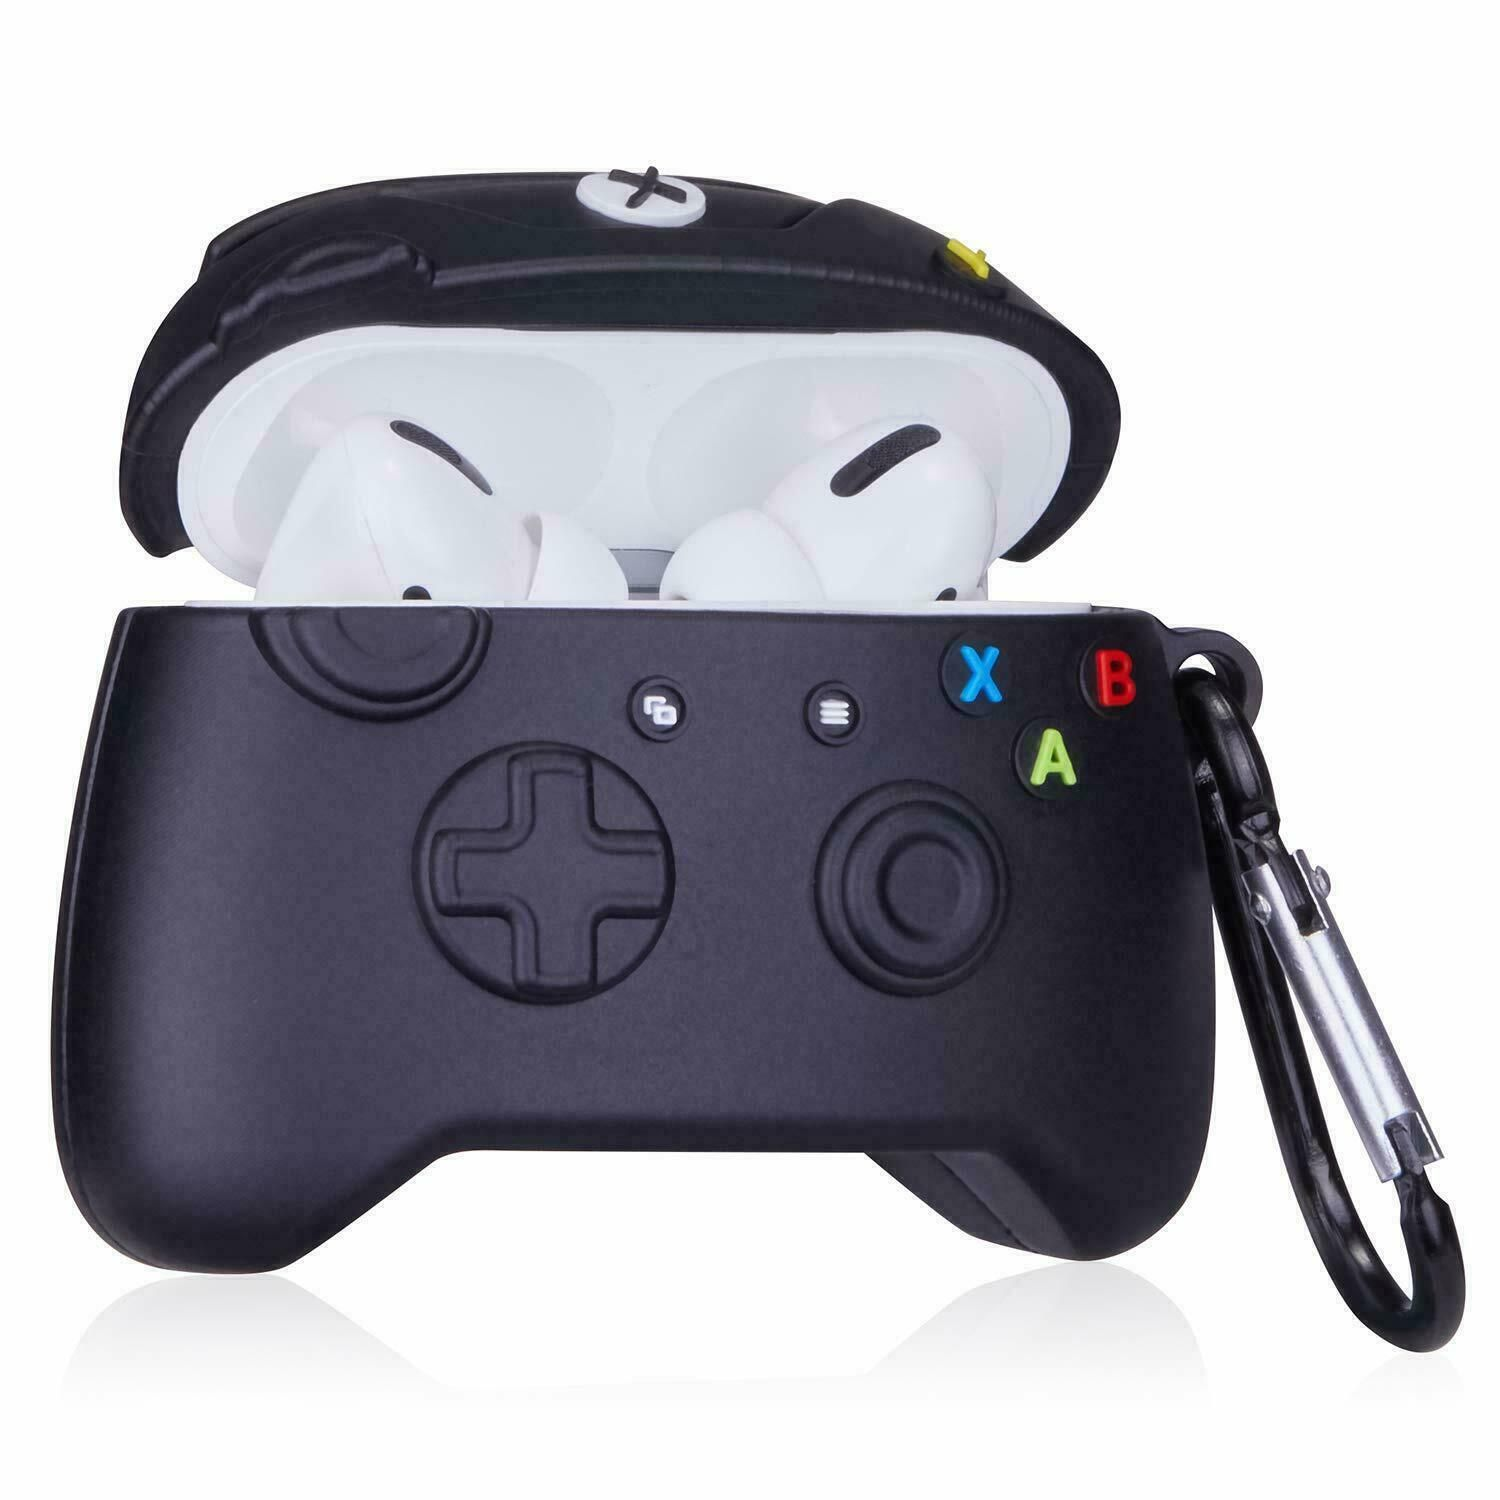 Airpods Pro Charging Charger Cartoon Skin Case Cover Xbox 360